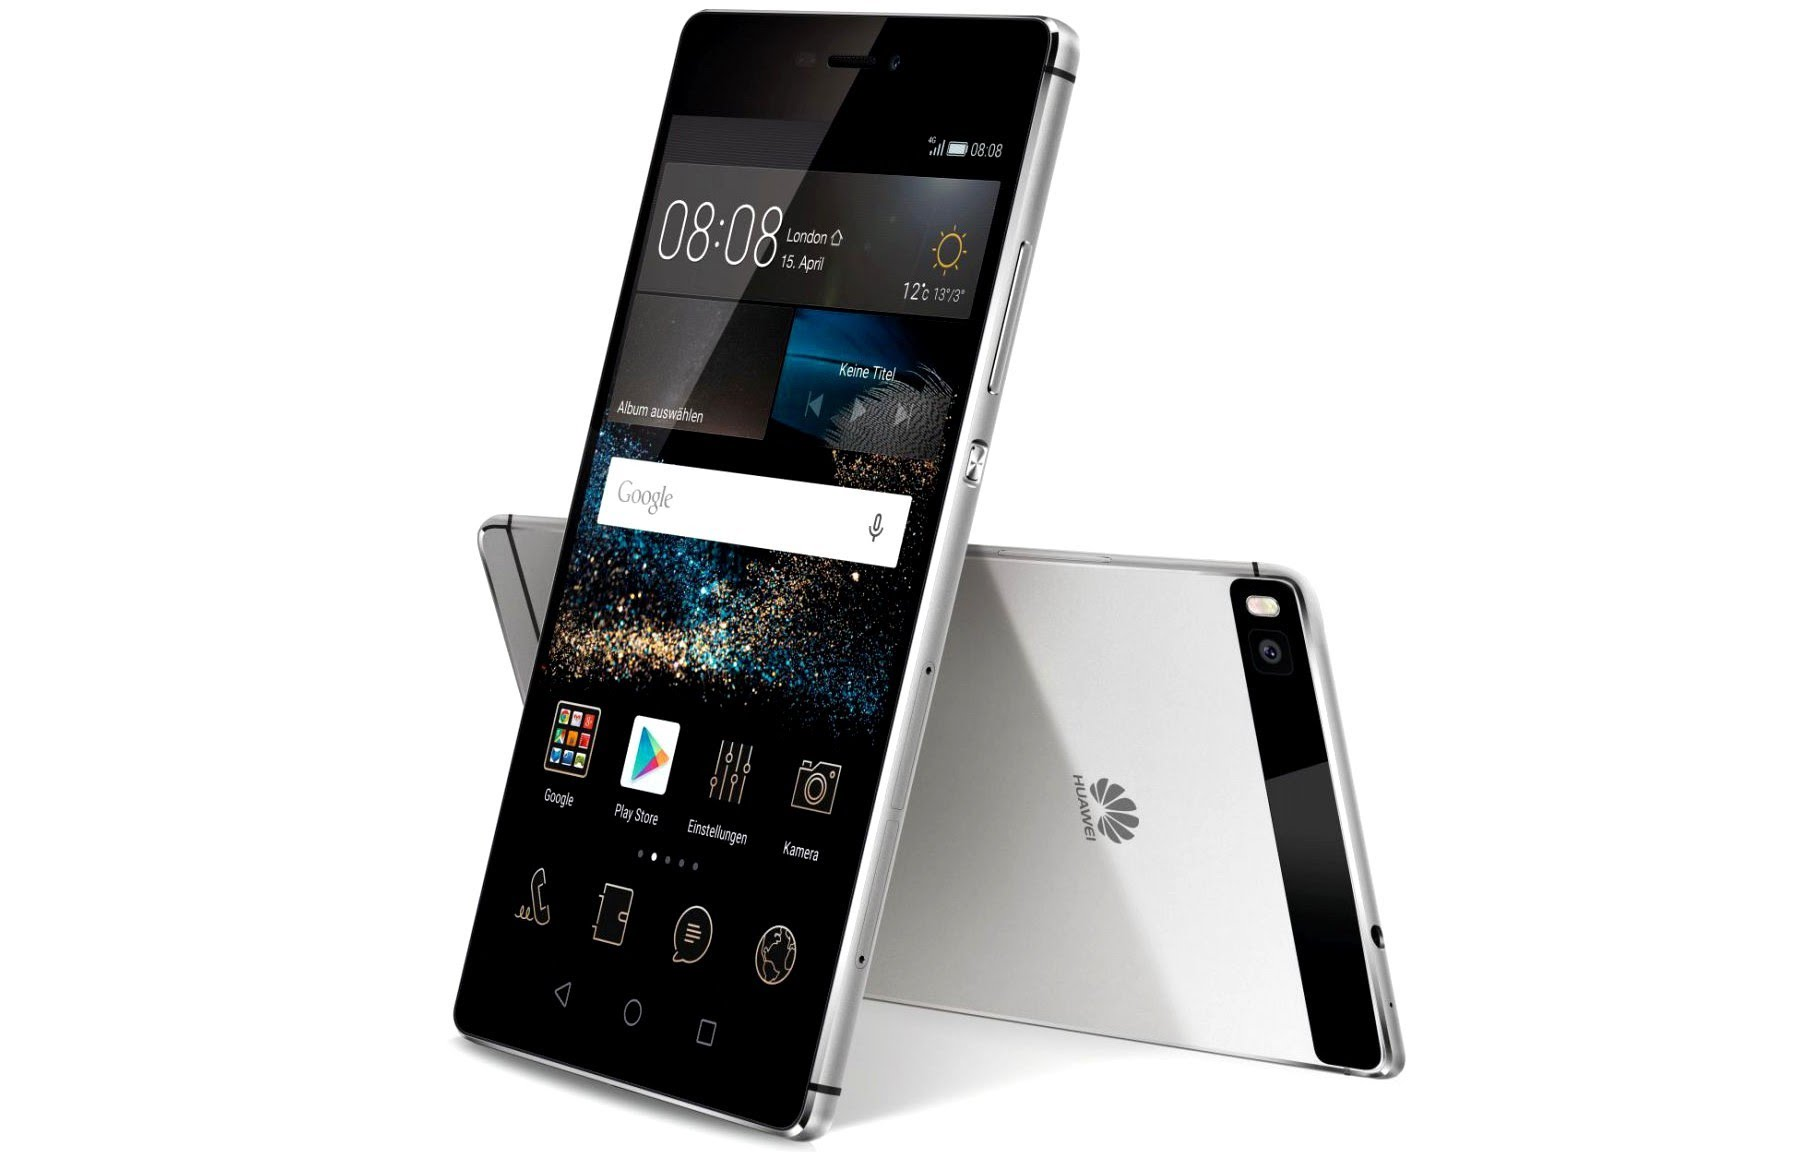 huawei p9 max. huawei p9, p9 max and lite specs prices unleashed. .